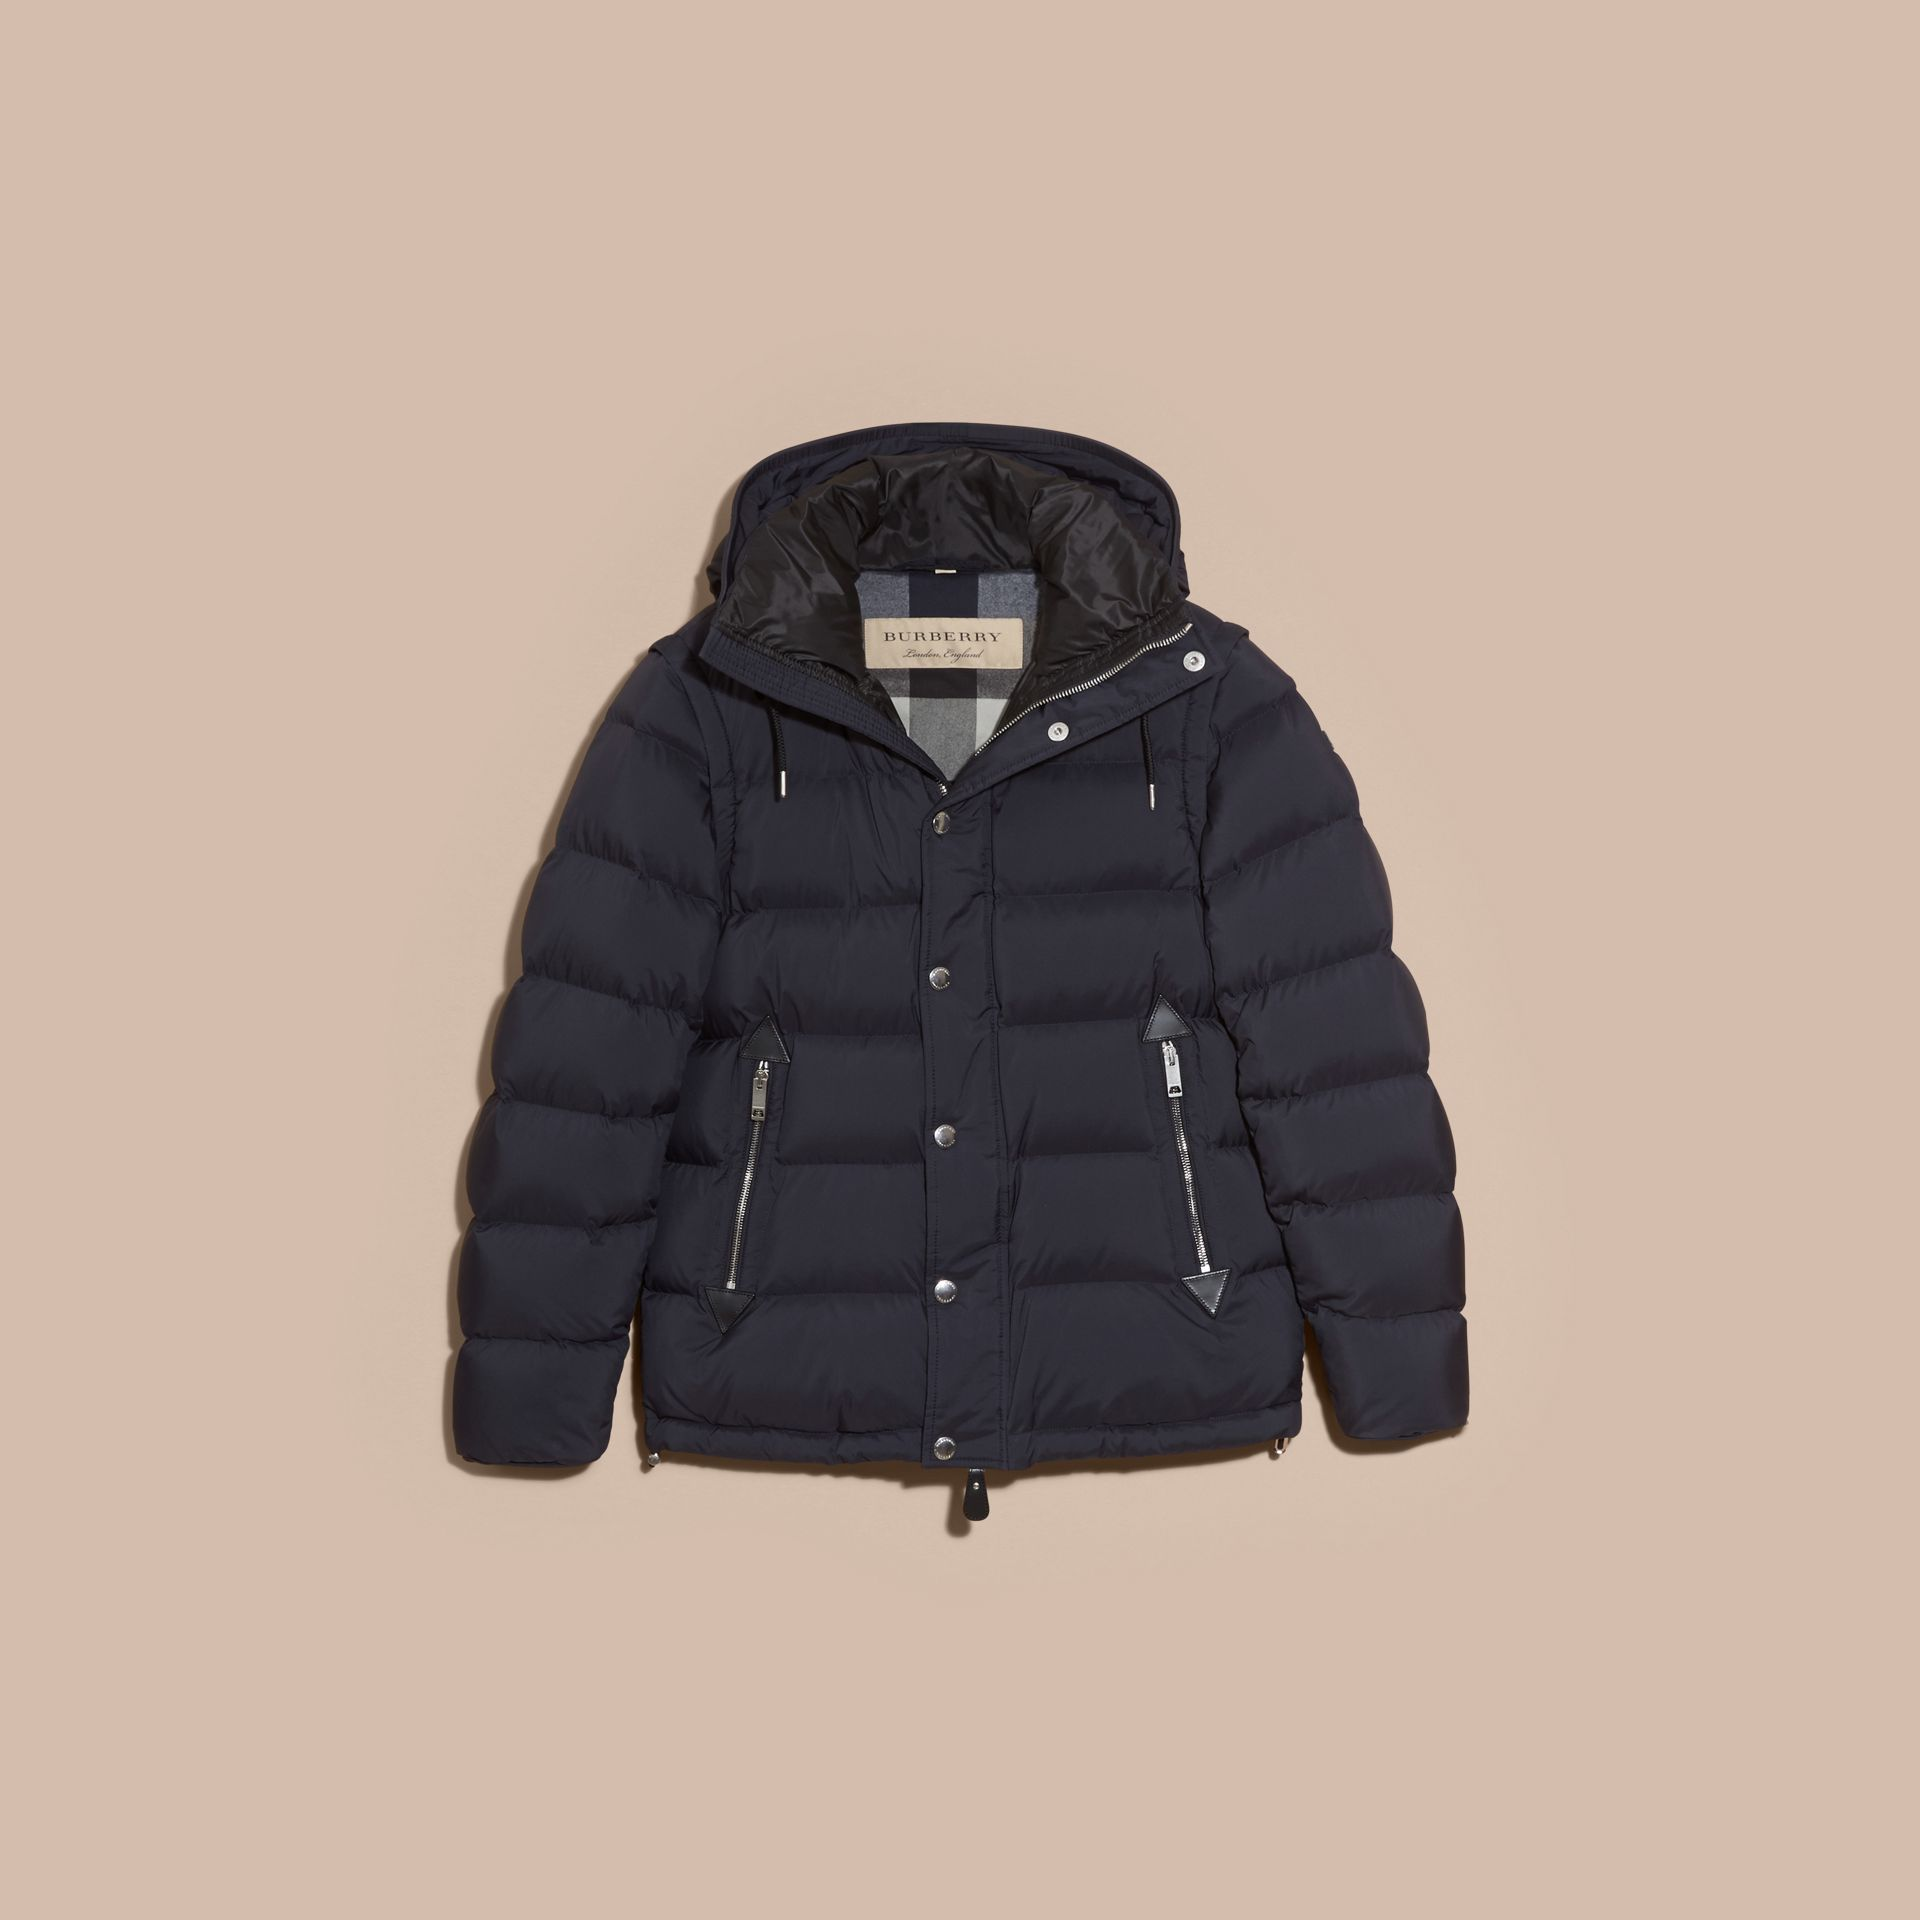 Navy Down-filled Hooded Jacket with Detachable Sleeves Navy - gallery image 4